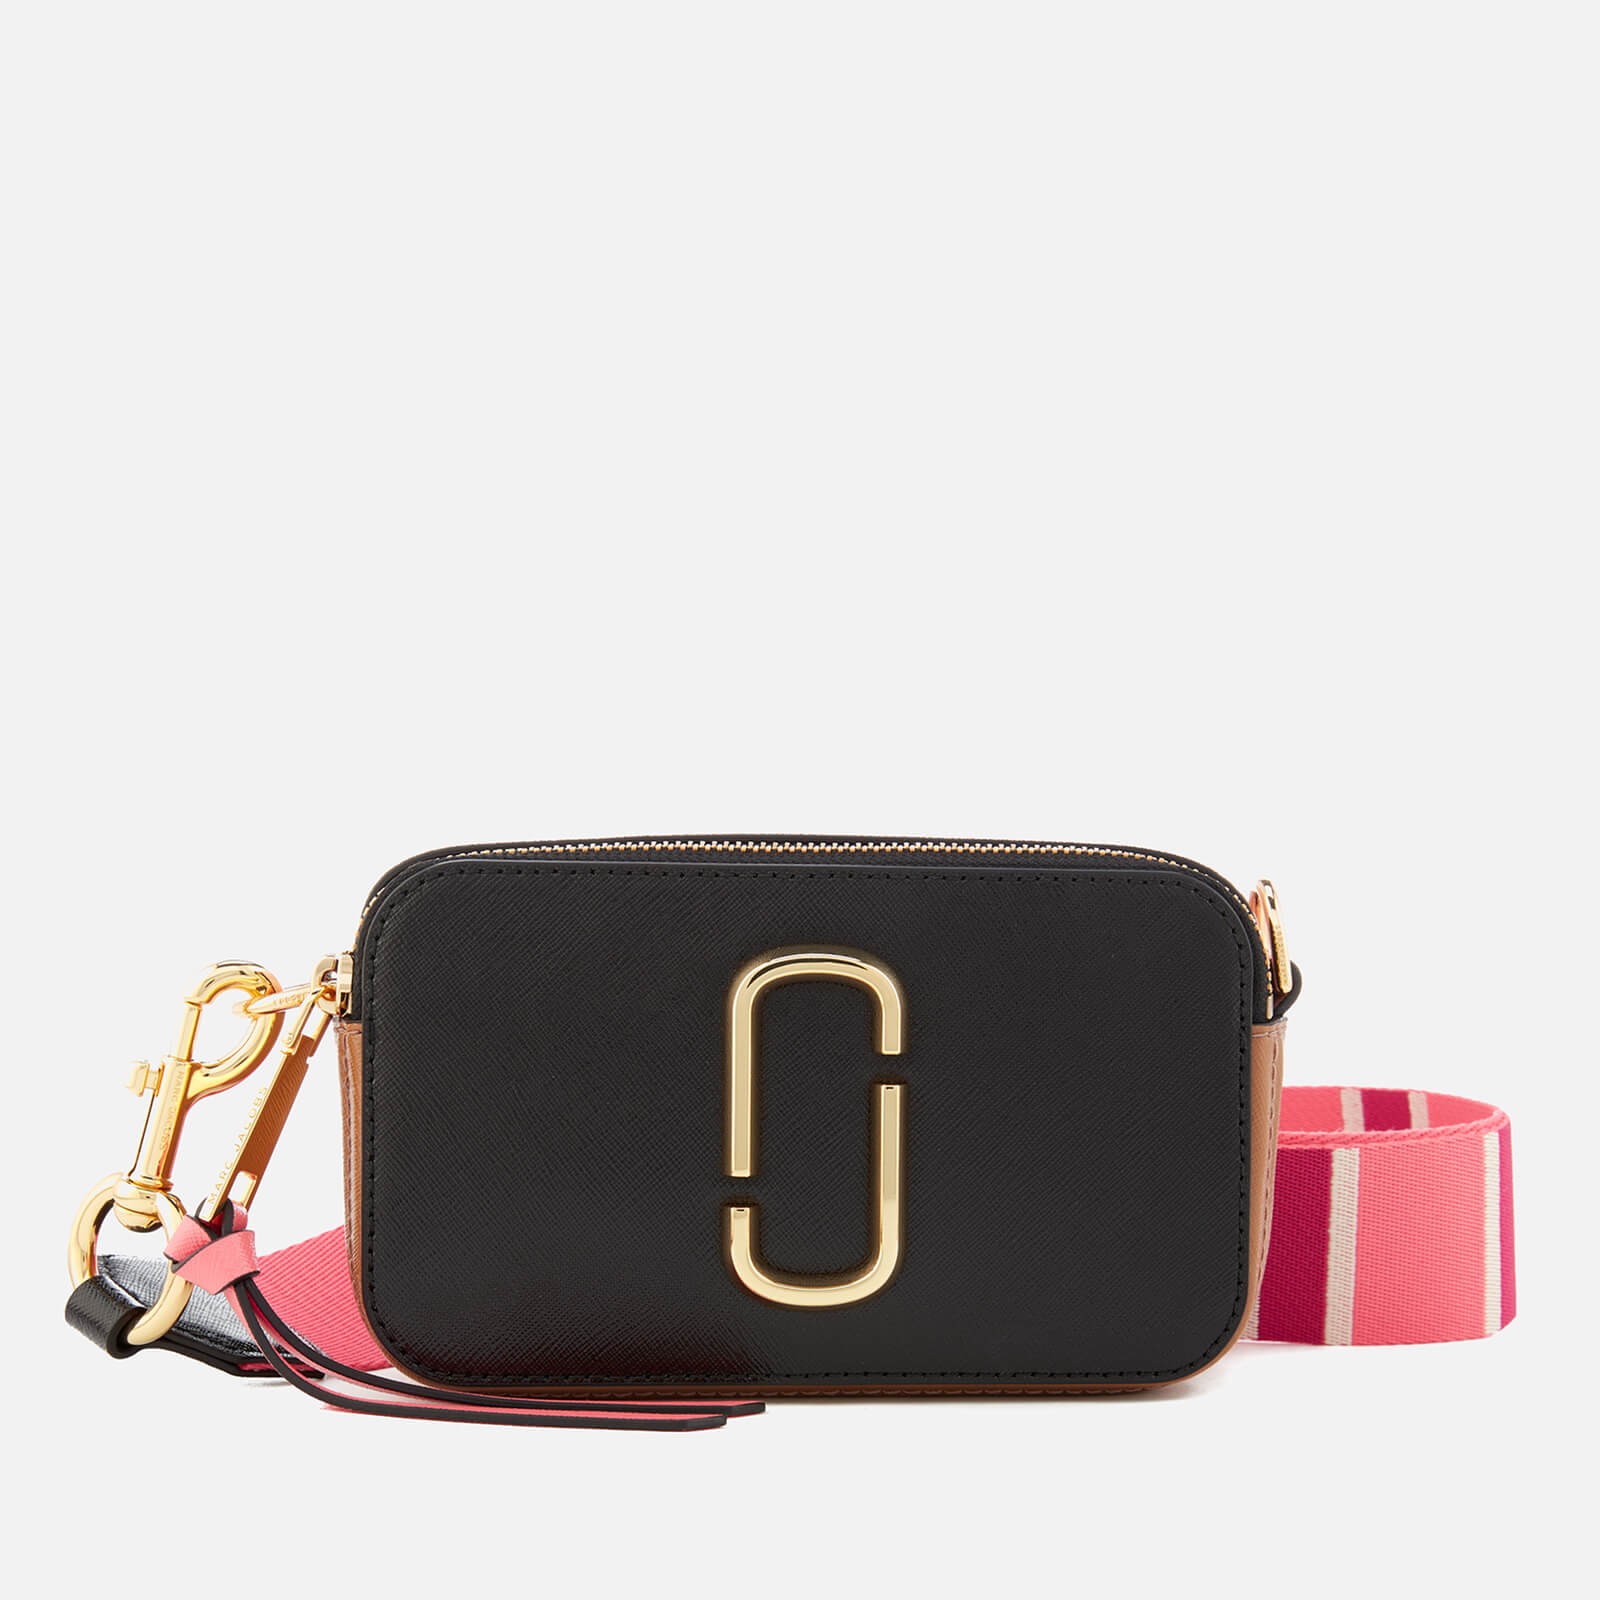 9c4edf12db16a Marc Jacobs Women s Snapshot Cross Body Bag - Black Gazelle - Free UK  Delivery over £50